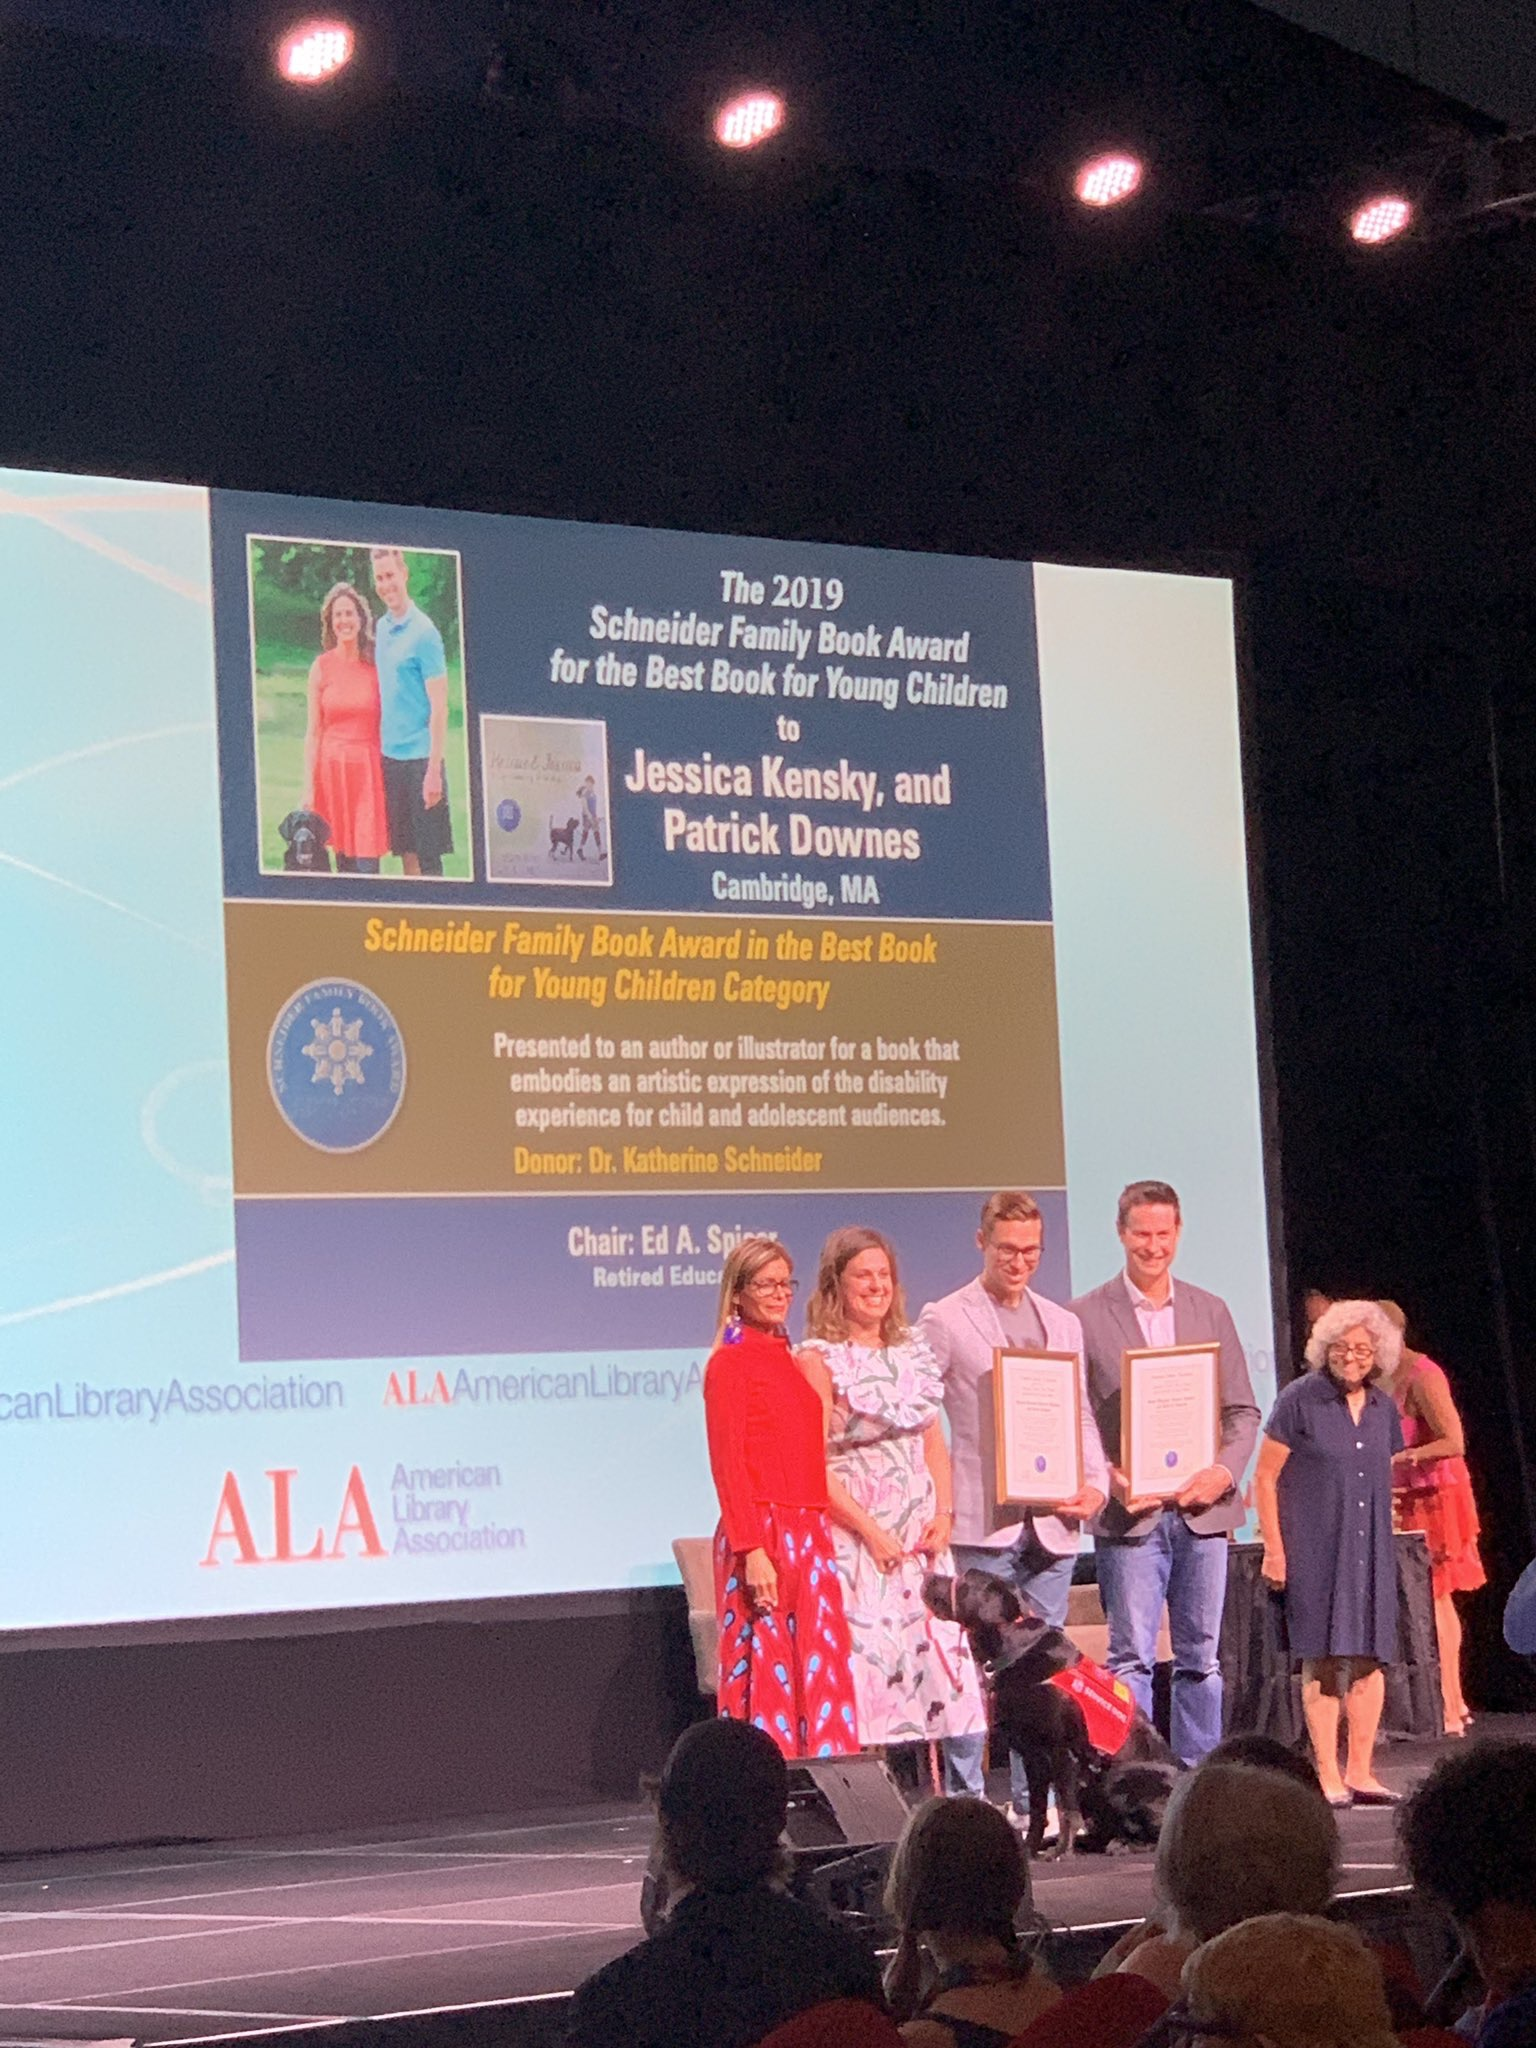 Receiving our Schneider Award at ALA in Washington, DC.